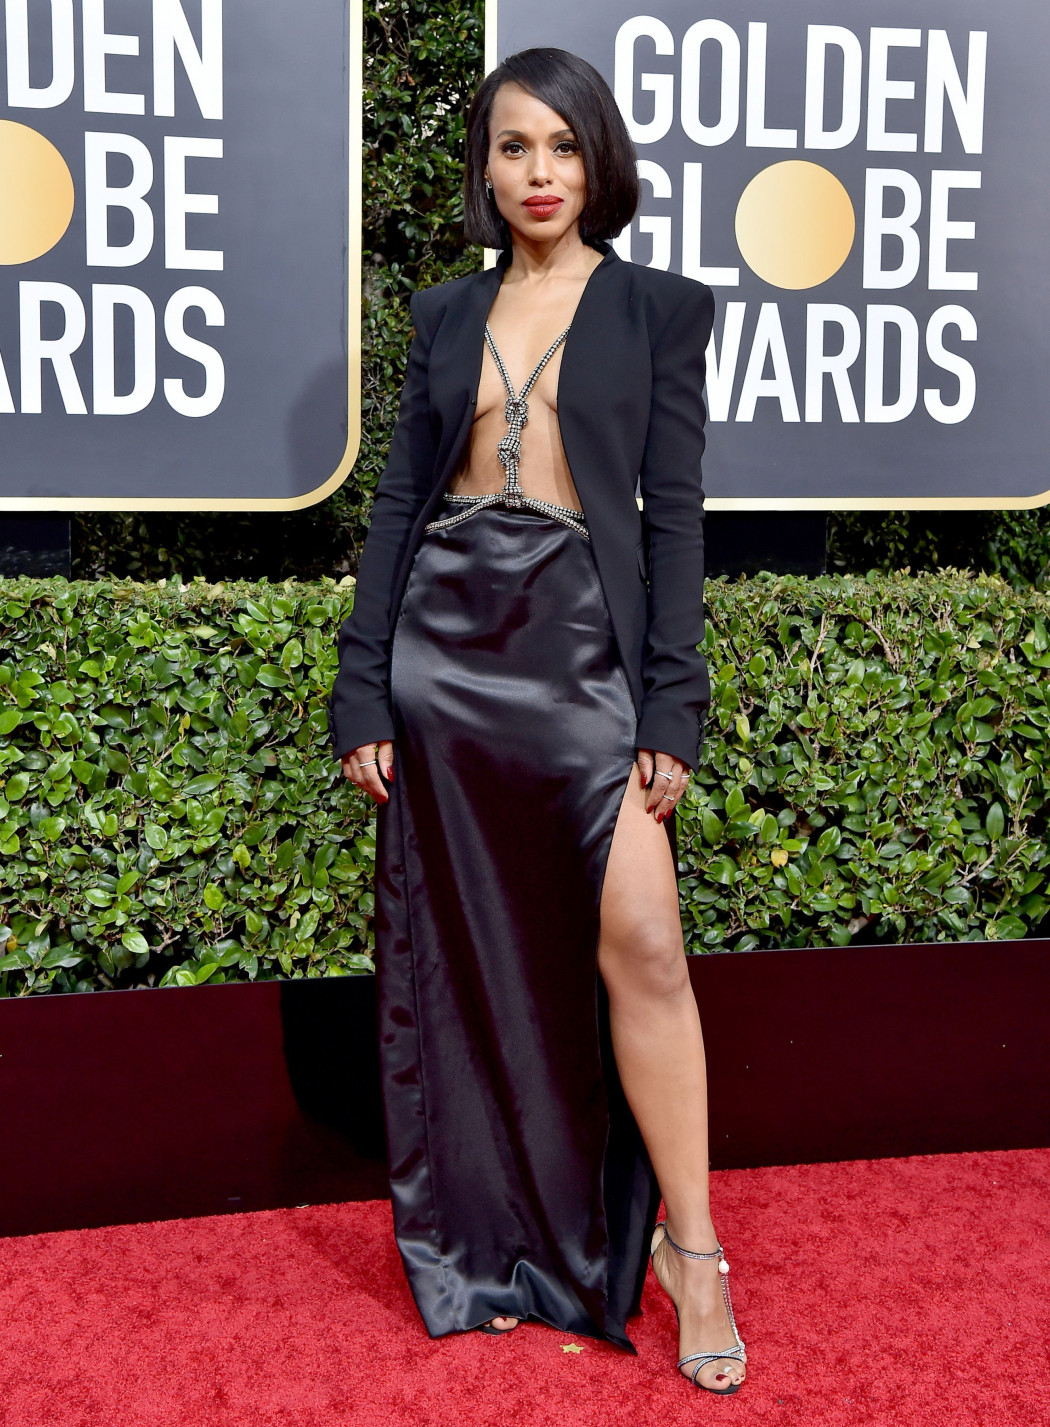 Golden Globes 2020 : les plus beaux looks du tapis rouge - 21